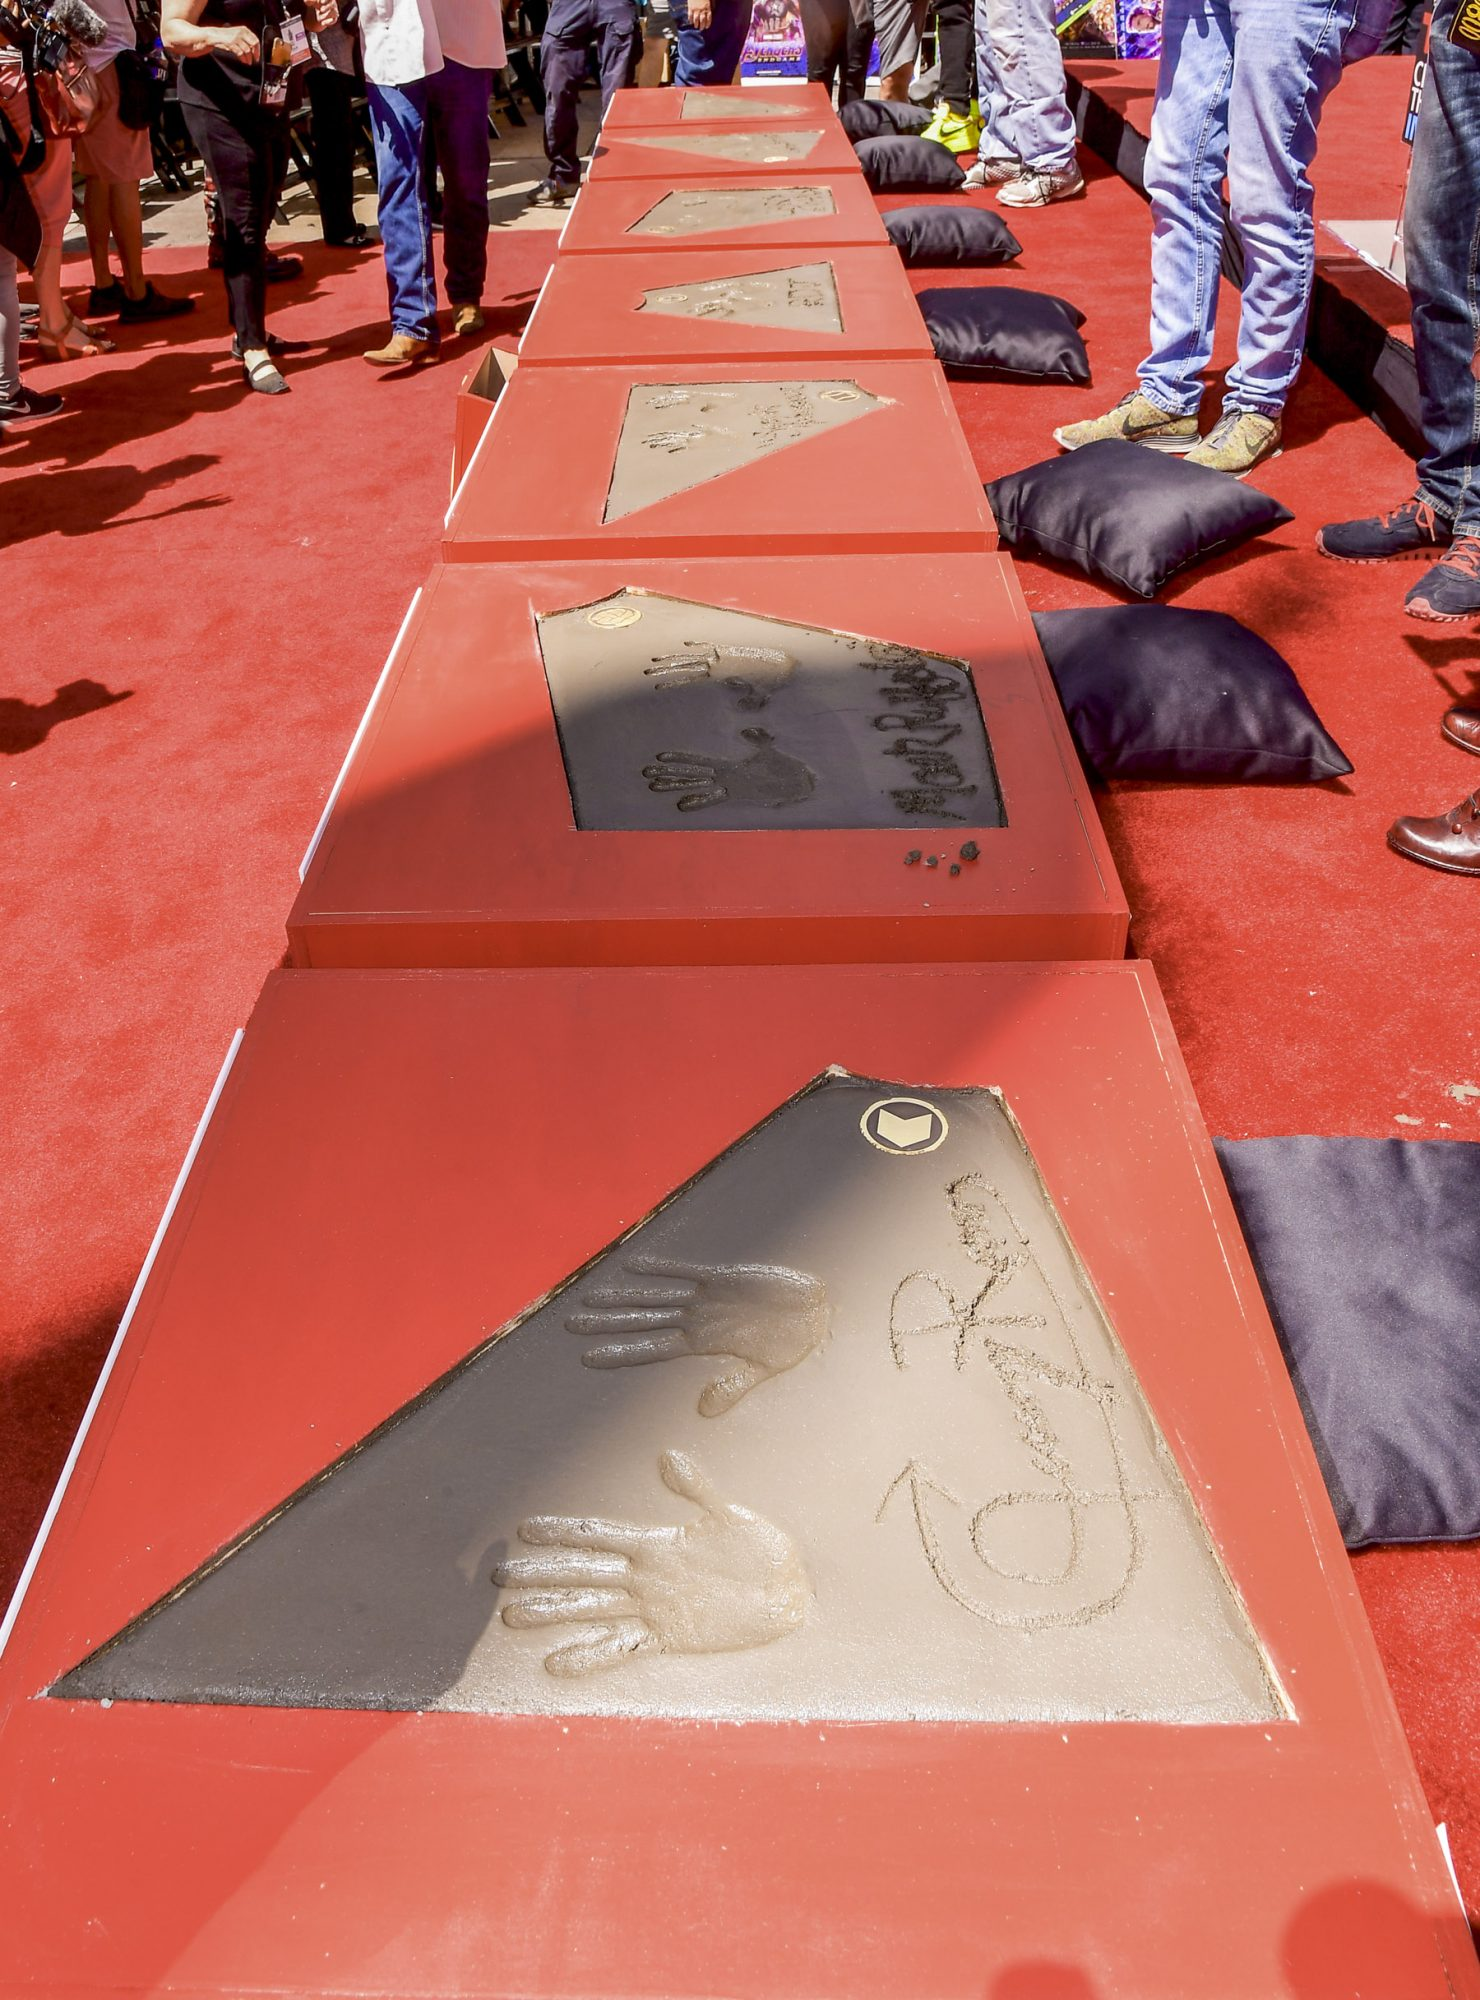 HOLLYWOOD, CALIFORNIA - APRIL 23: A general view of Kevin Feige's, Chris Hemsworth's, Chris Evans', Robert Downey Jr.'s , Scarlett Johansson's, Mark Ruffalo's, and Jeremy Renner's handprints at the Marvel Studios' 'Avengers: Endgame' Cast Place Their Hand Prints In Cement At TCL Chinese Theatre IMAX Forecourt at TCL Chinese Theatre IMAX on April 23, 2019 in Hollywood, California. (Photo by Matt Winkelmeyer/Getty Images)